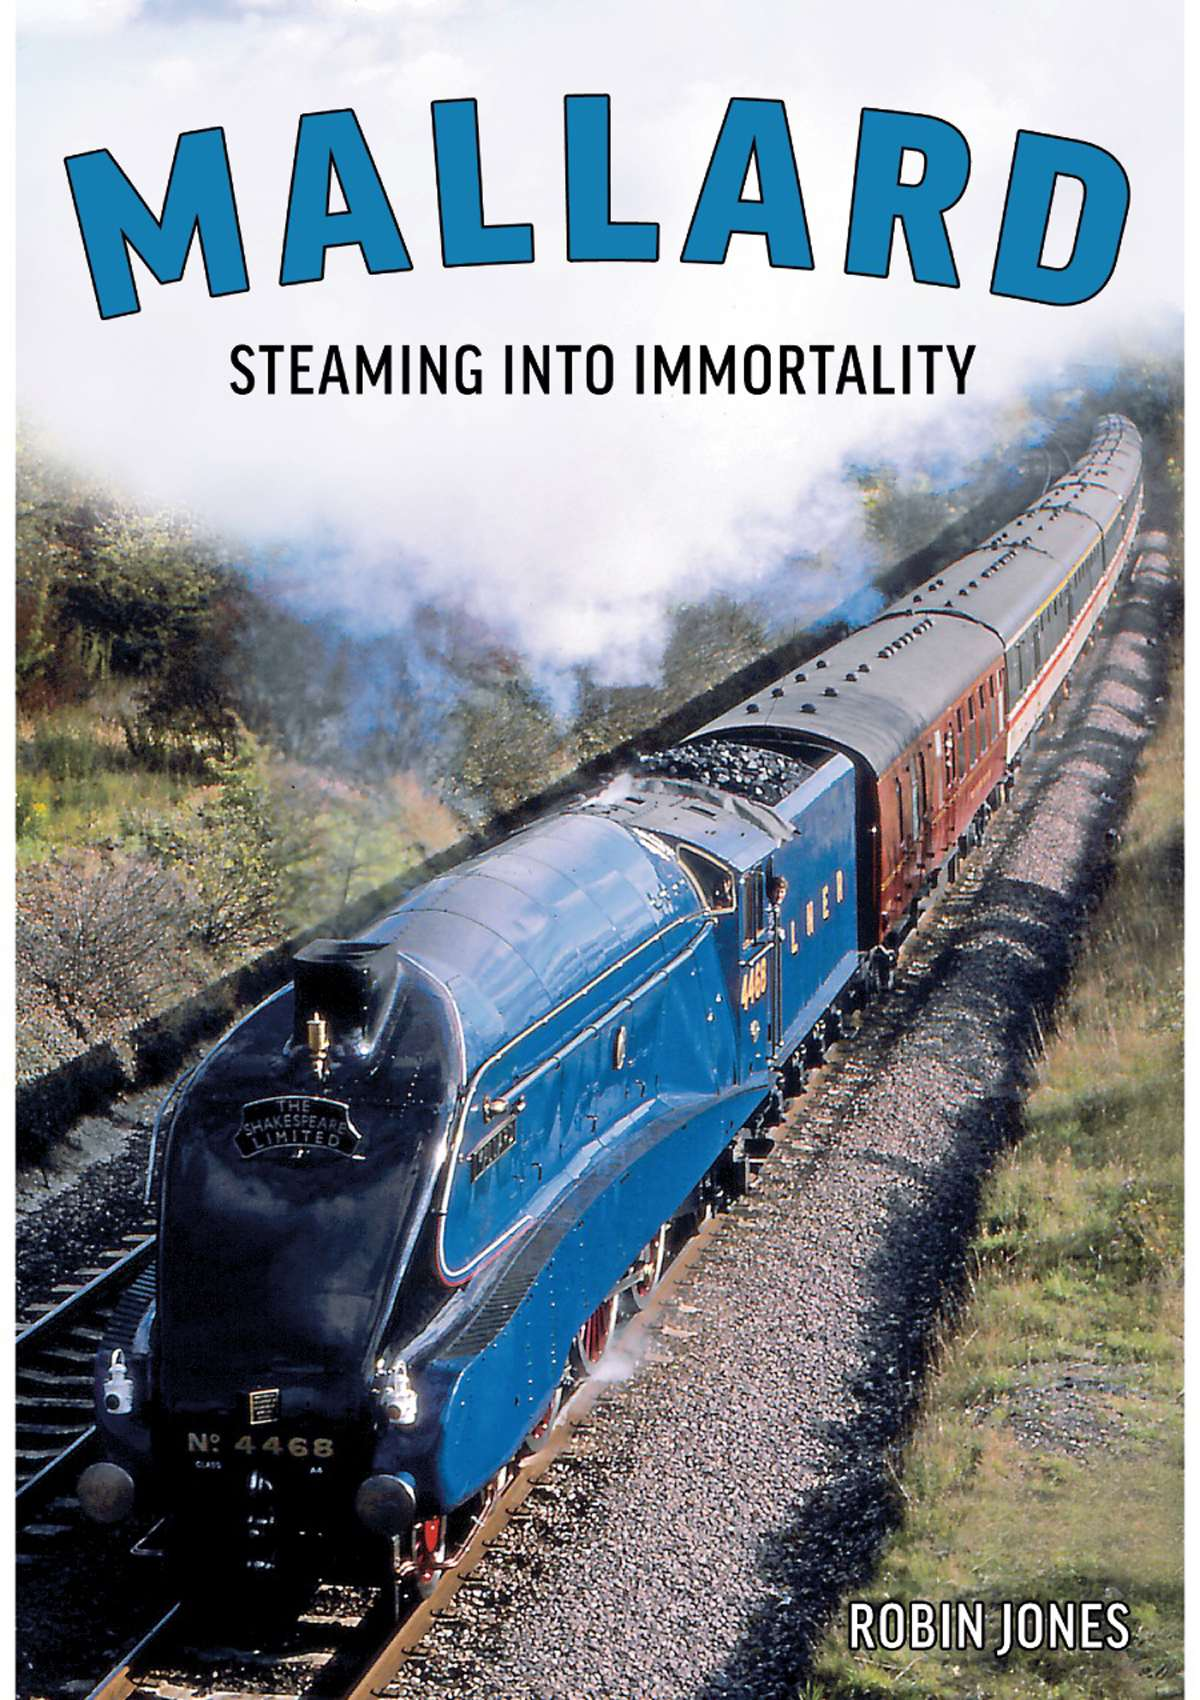 Mallard - The Story of Britain's Most Magnificent Locomotive